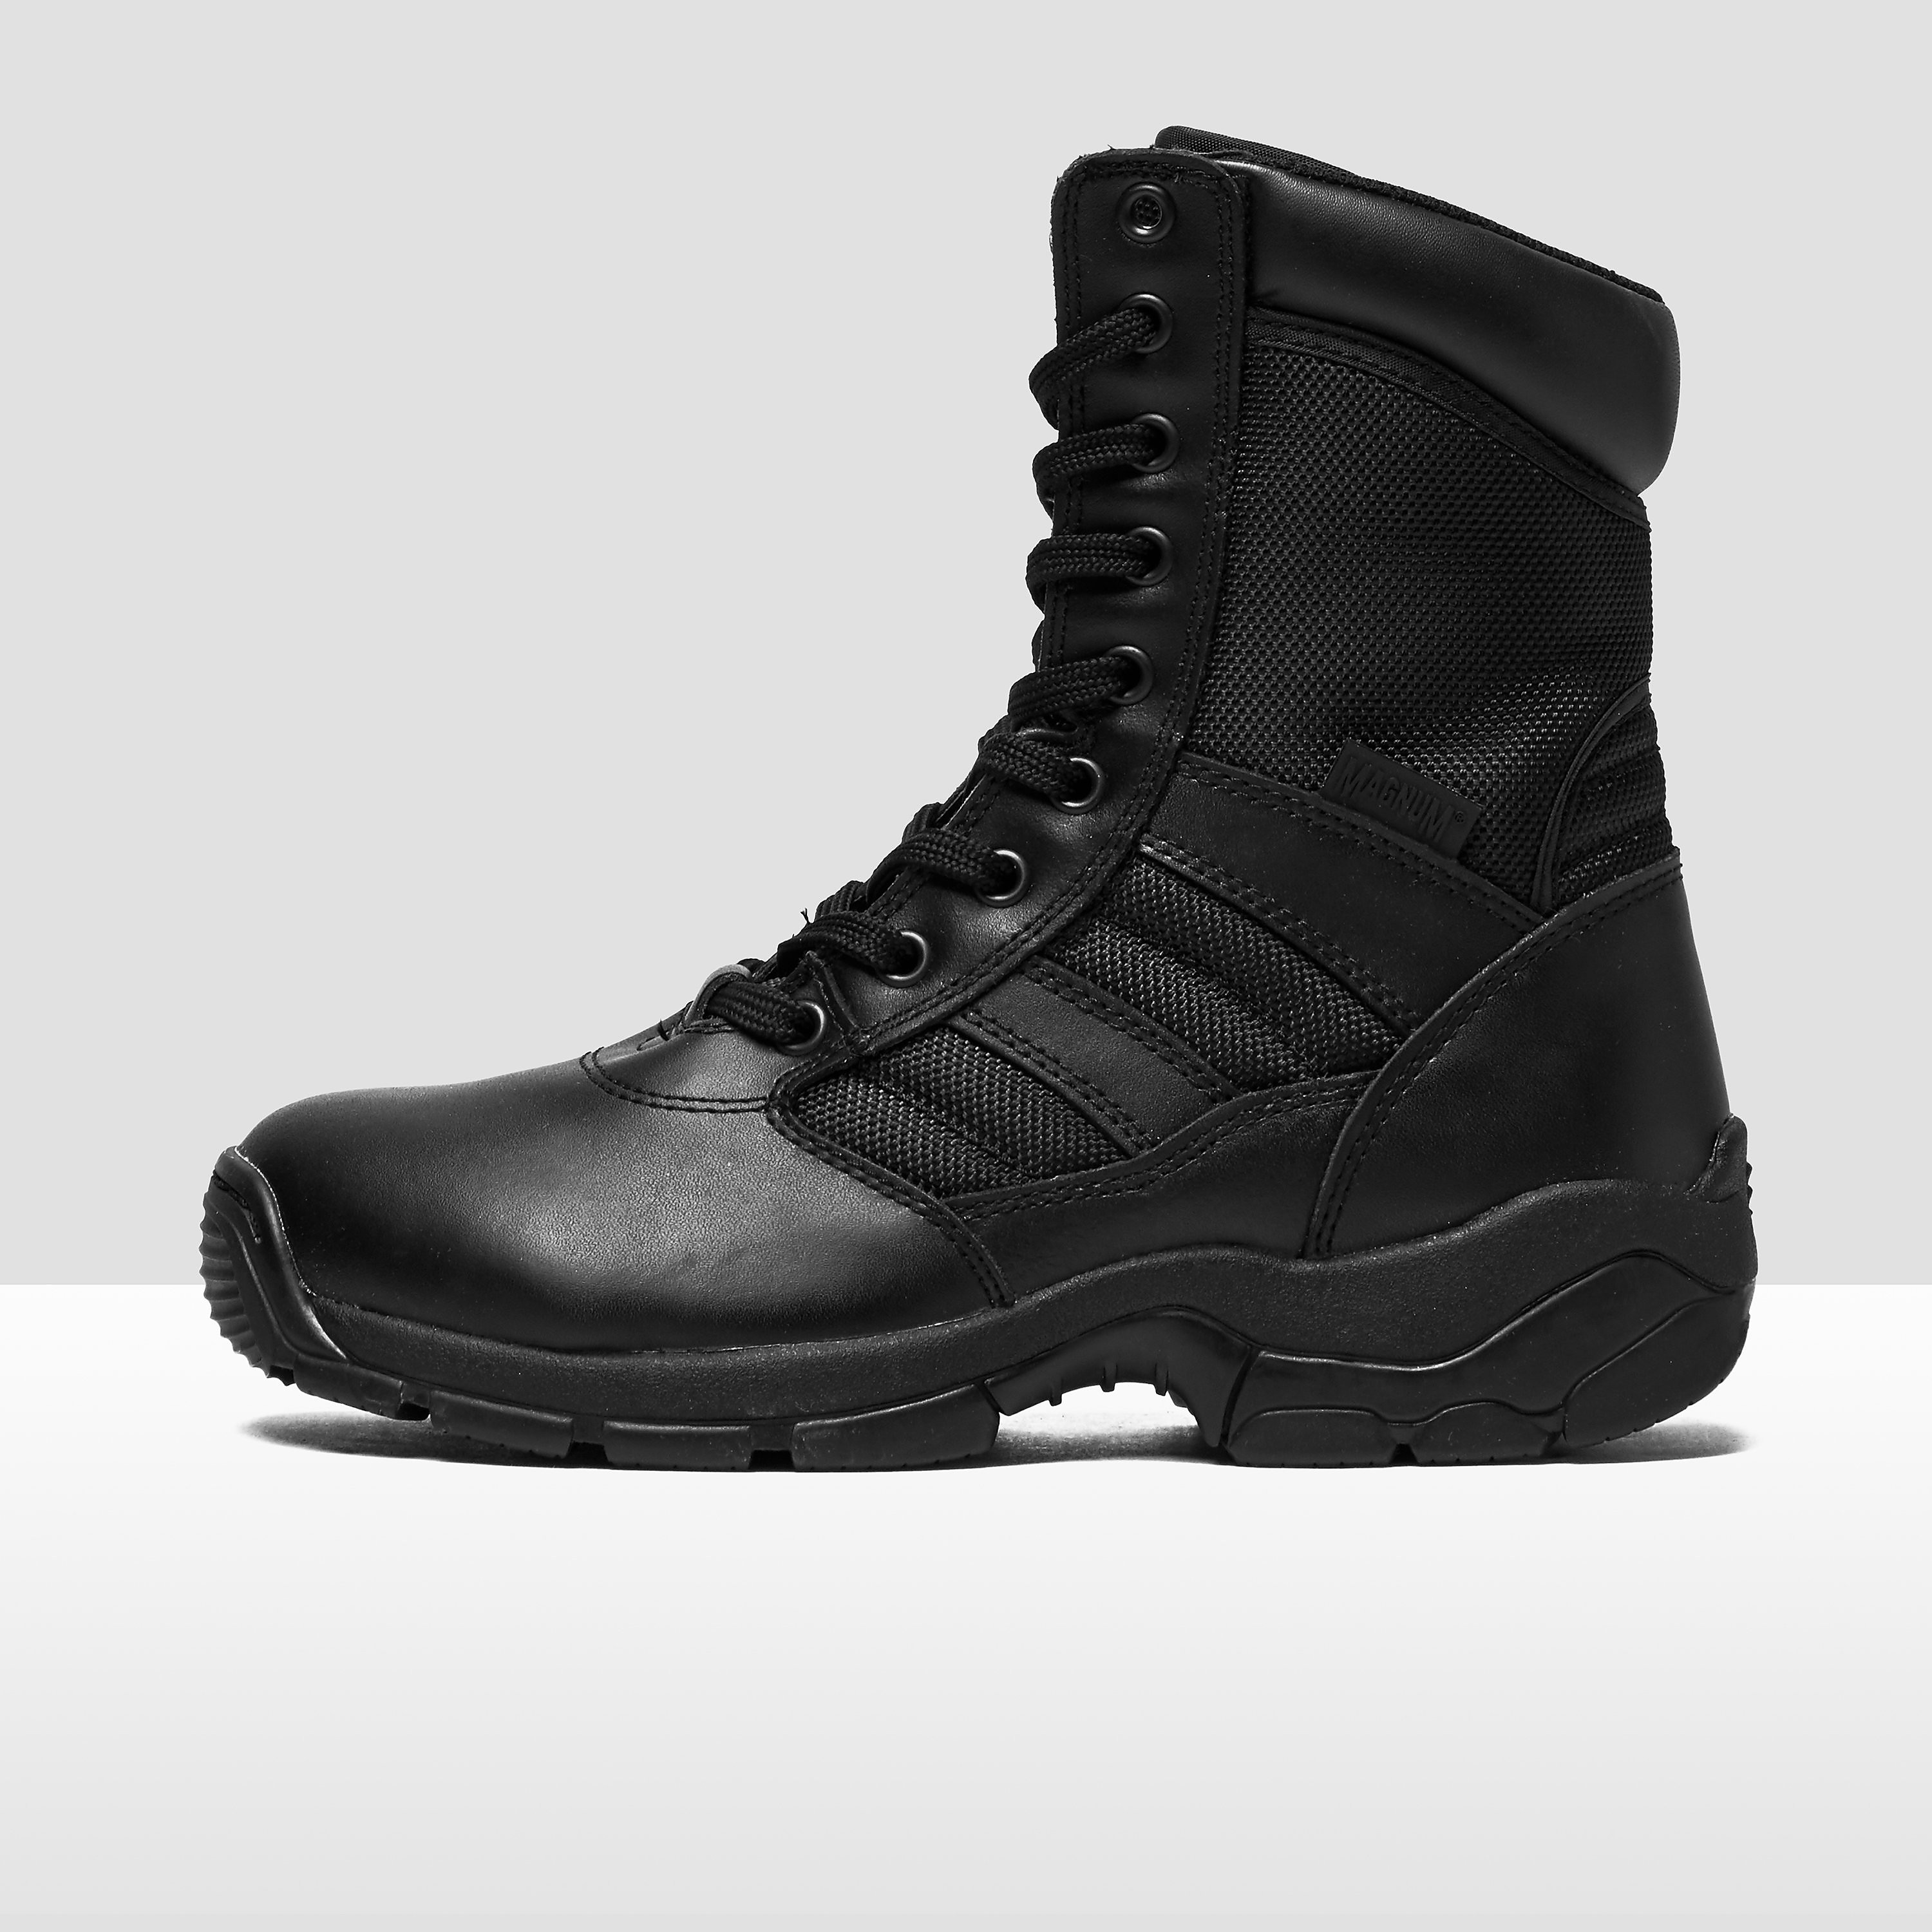 Sprayway Panther 8.0 Boots